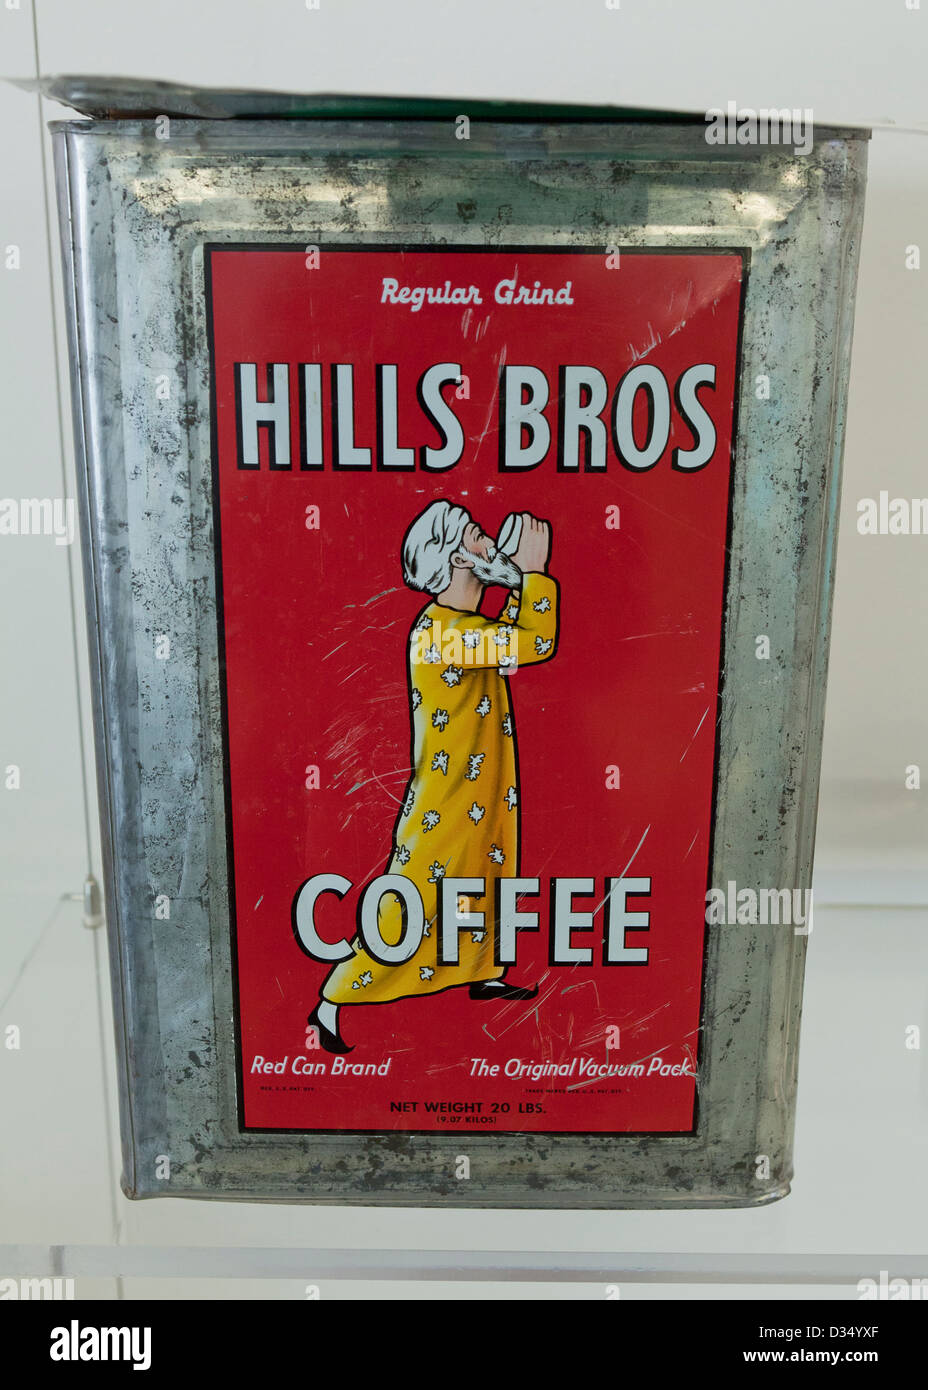 Vintage Hills Bros Coffee 20 lbs. can - Stock Image